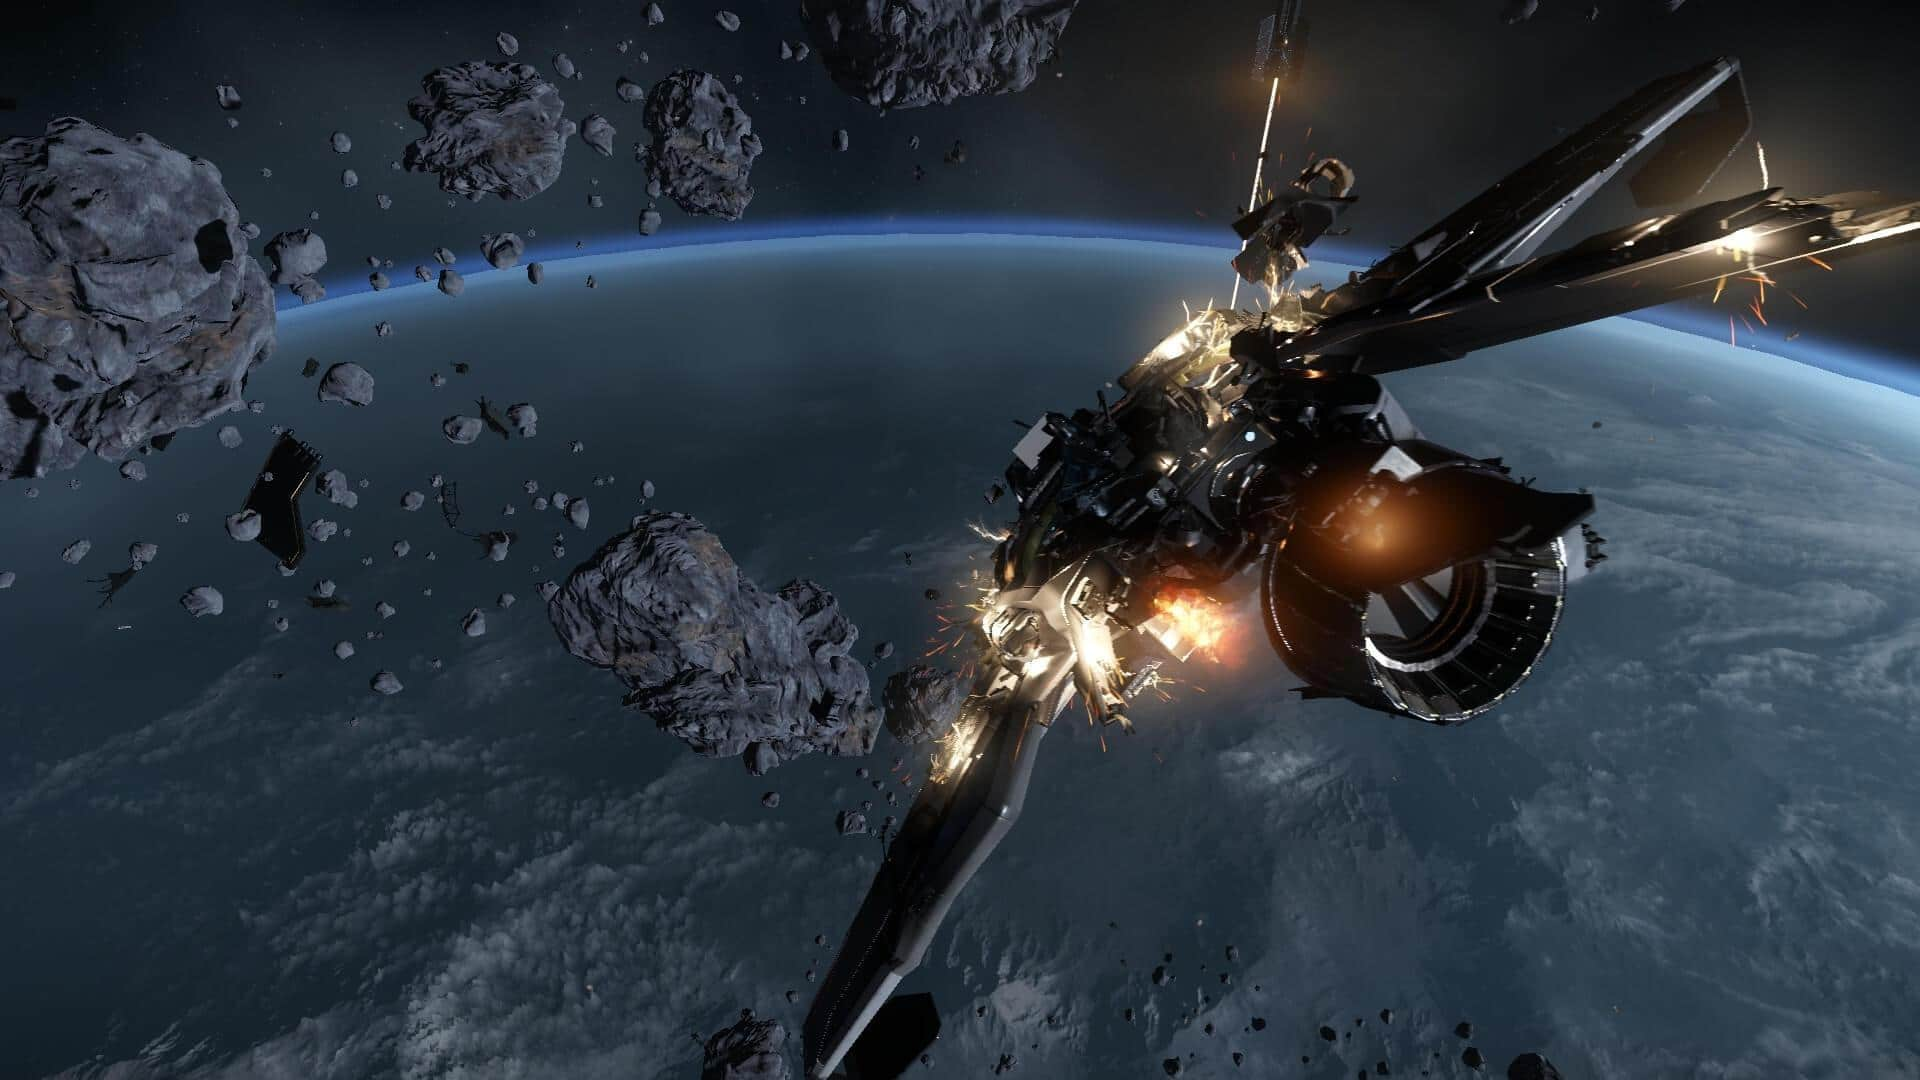 AVX Instruction Support Is Required To Play Star Citizen